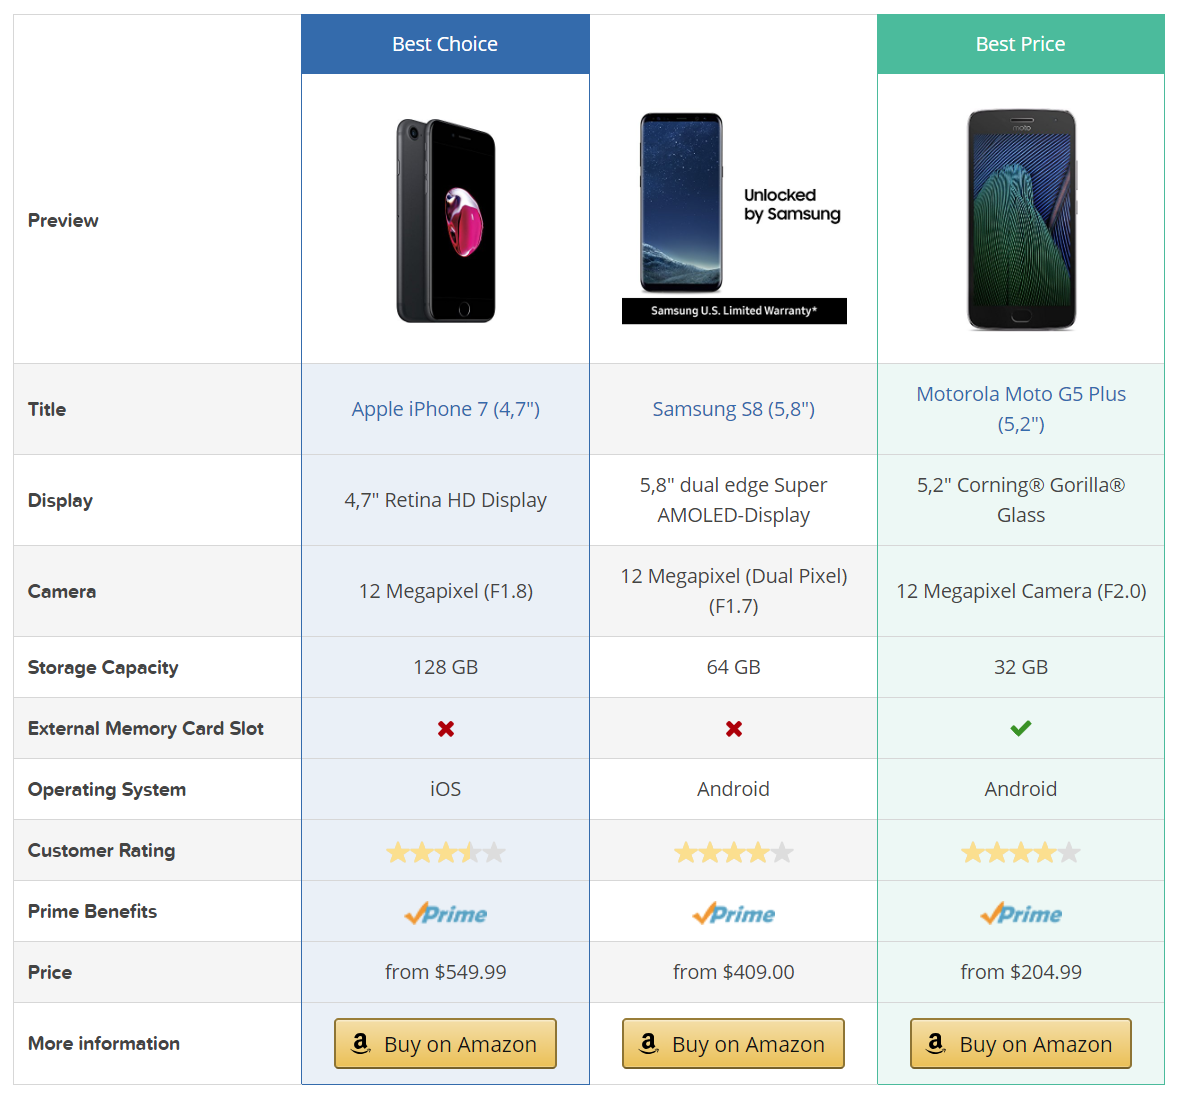 Bestseller lists, Widgets, and Comparison Tables